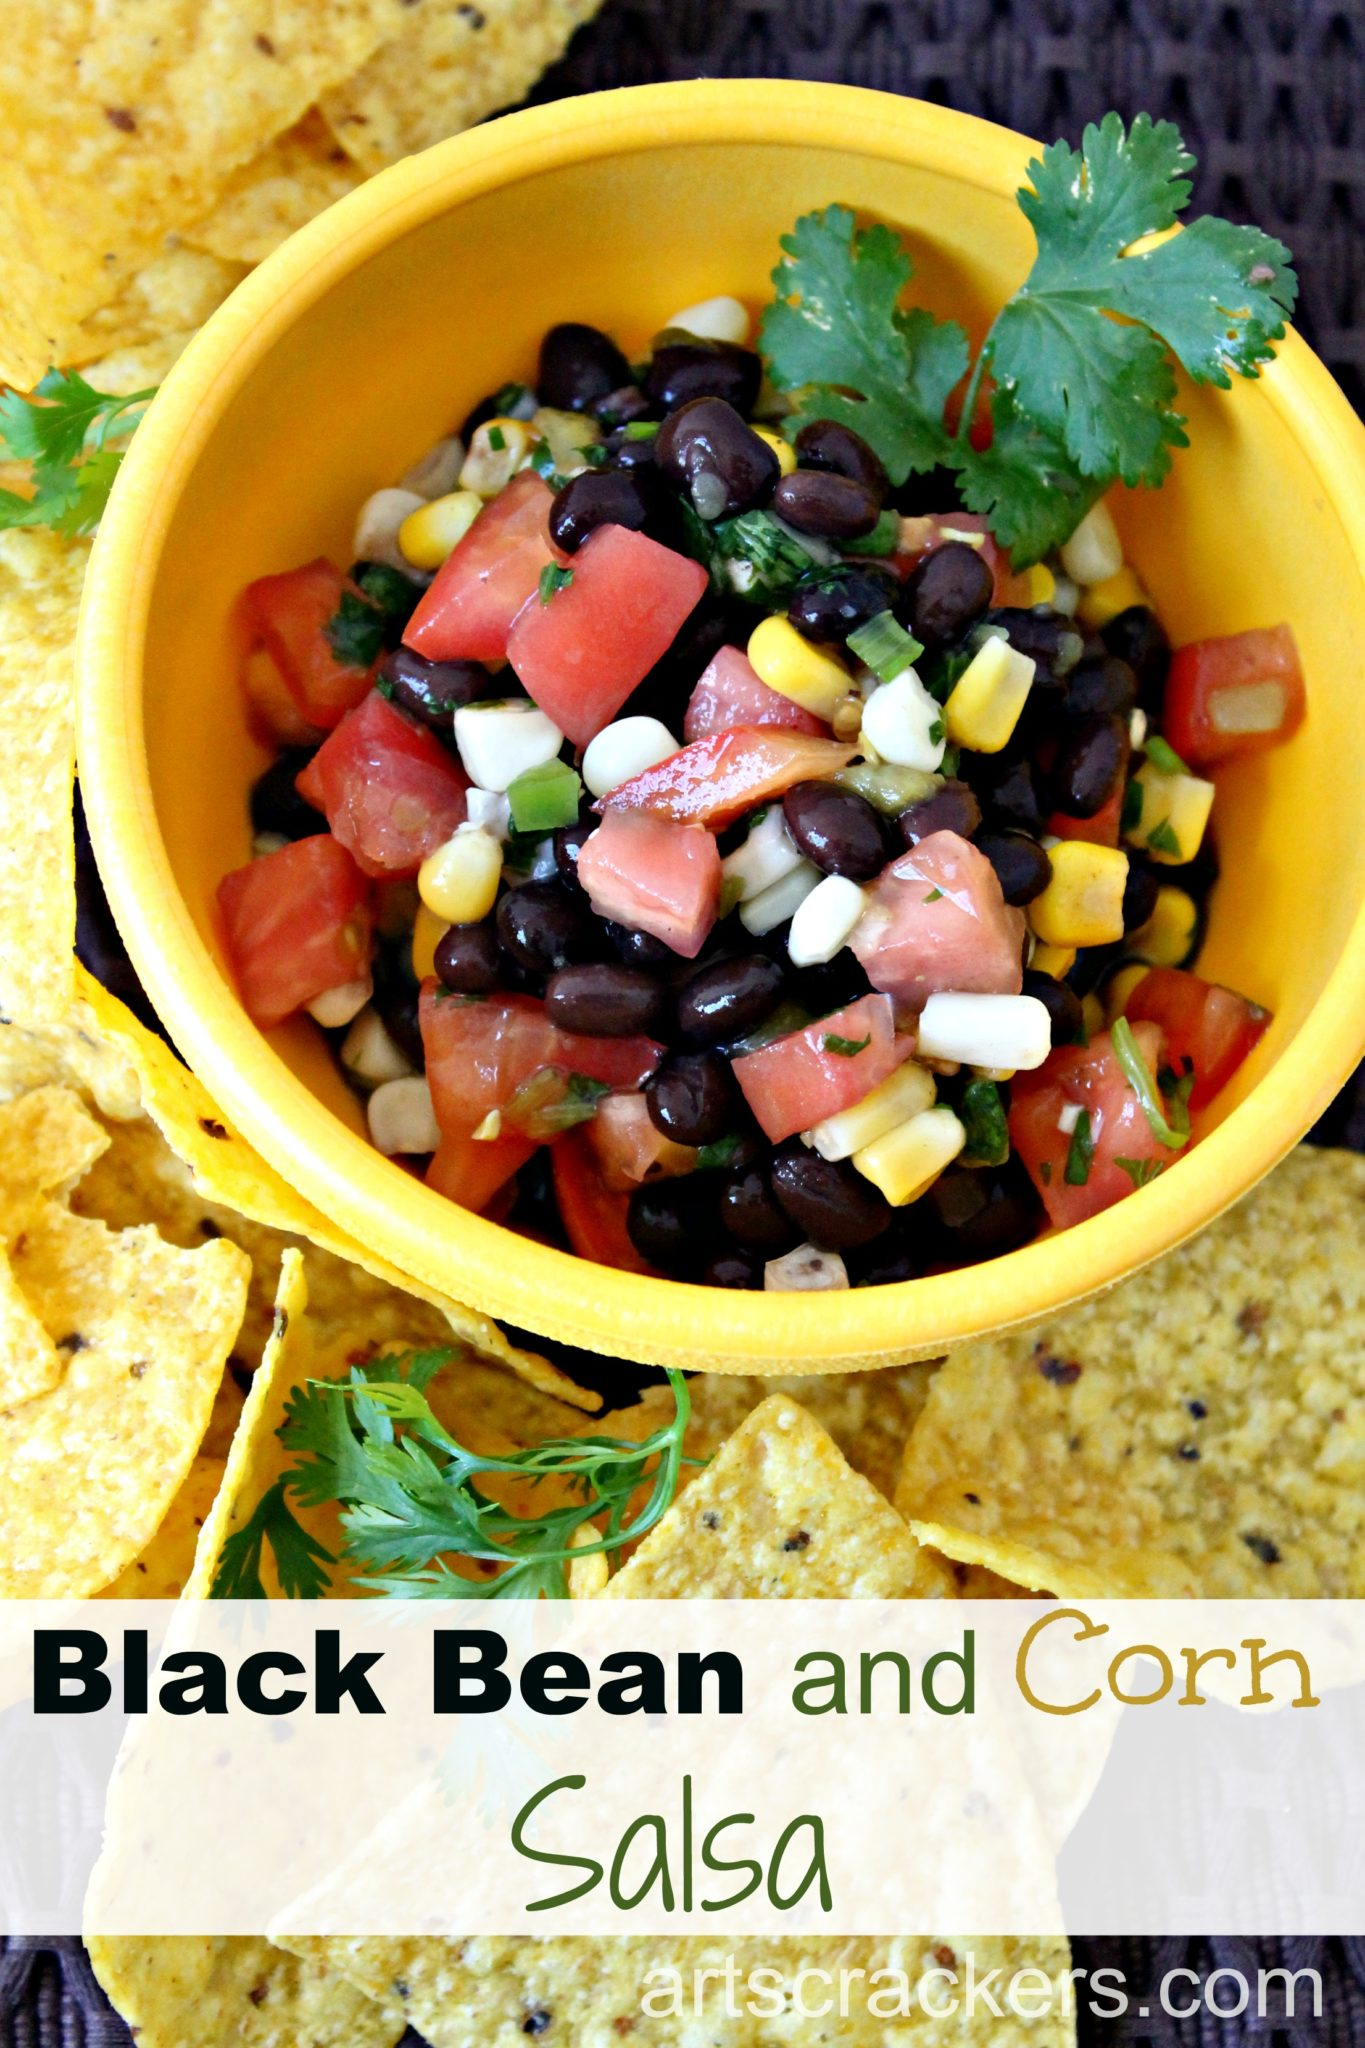 Salsa is one of my favorite snacks. I eat it all the time. Fresh salsa ...